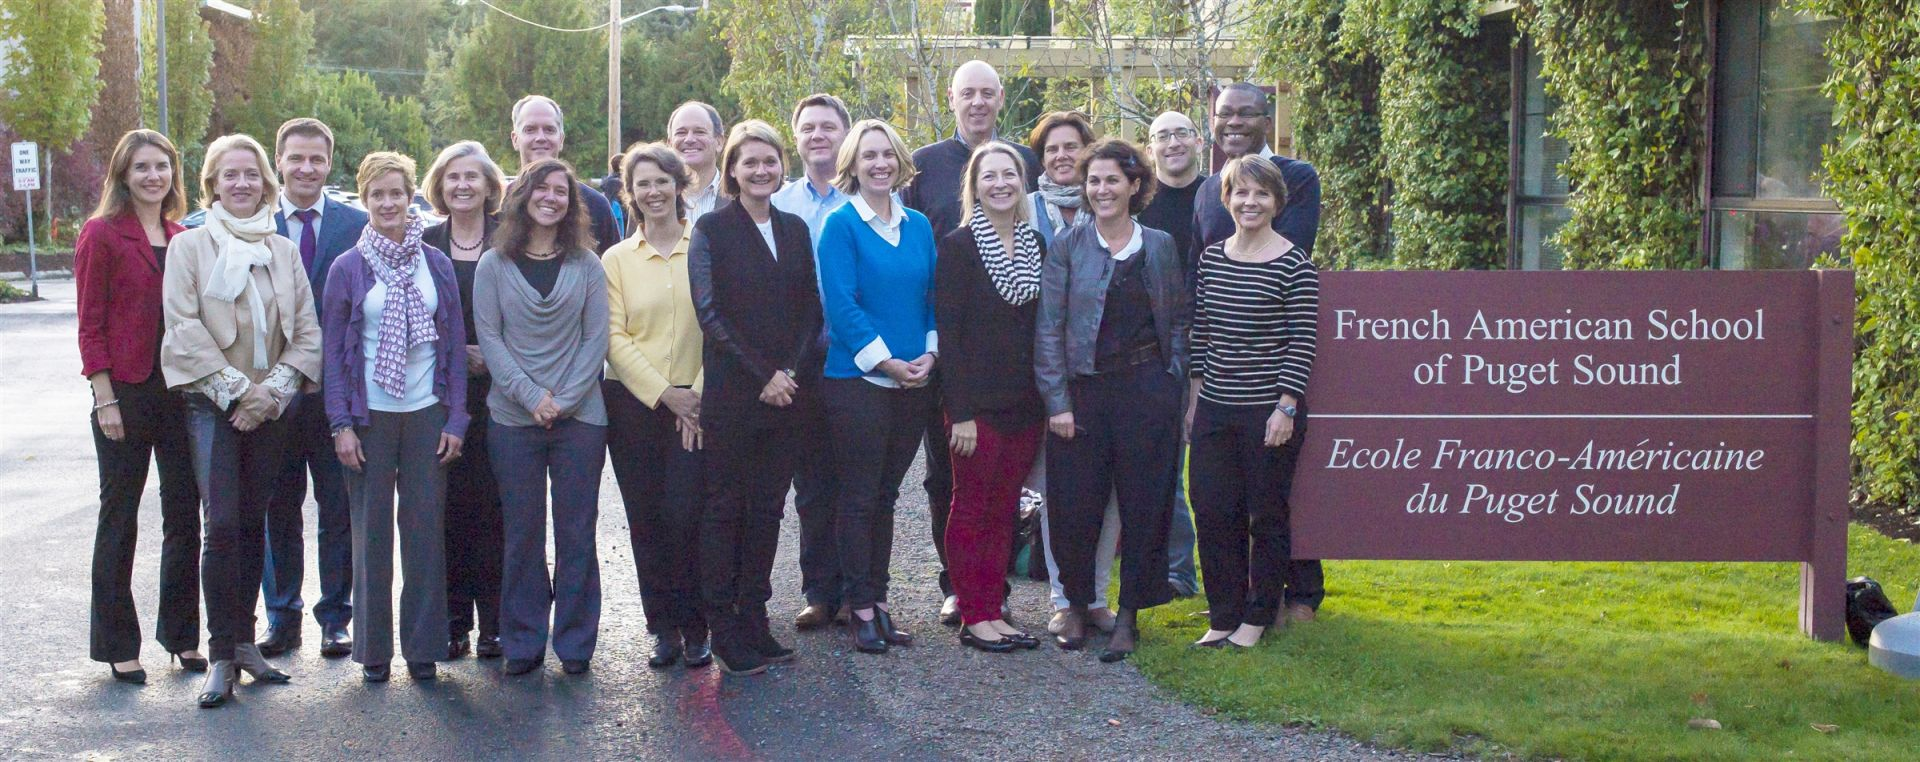 2014-15 Board of Trustees